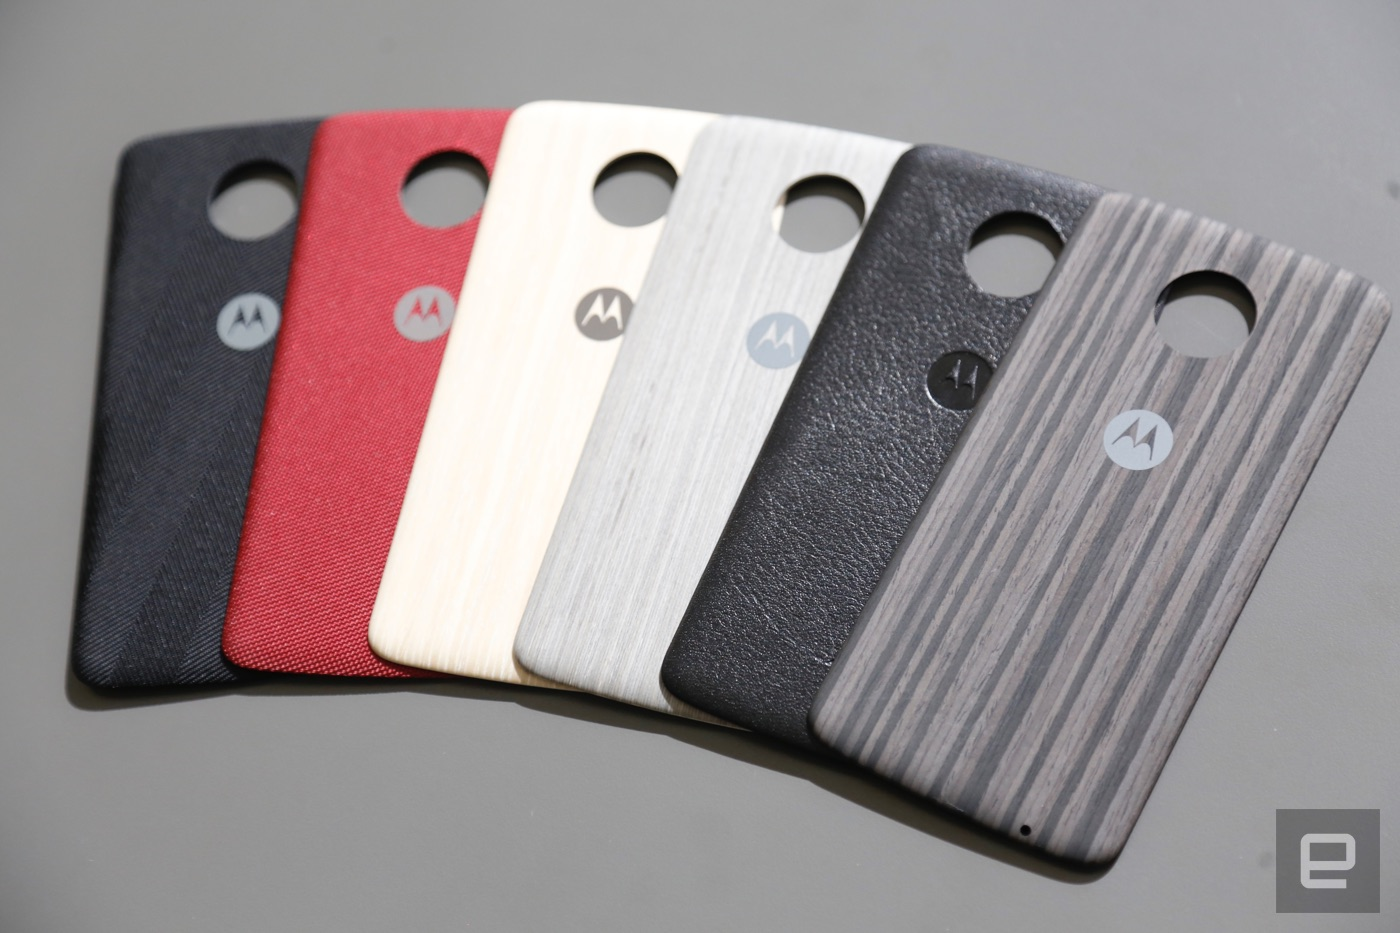 The Moto Z and Z Force are as controversial as they are ambitious